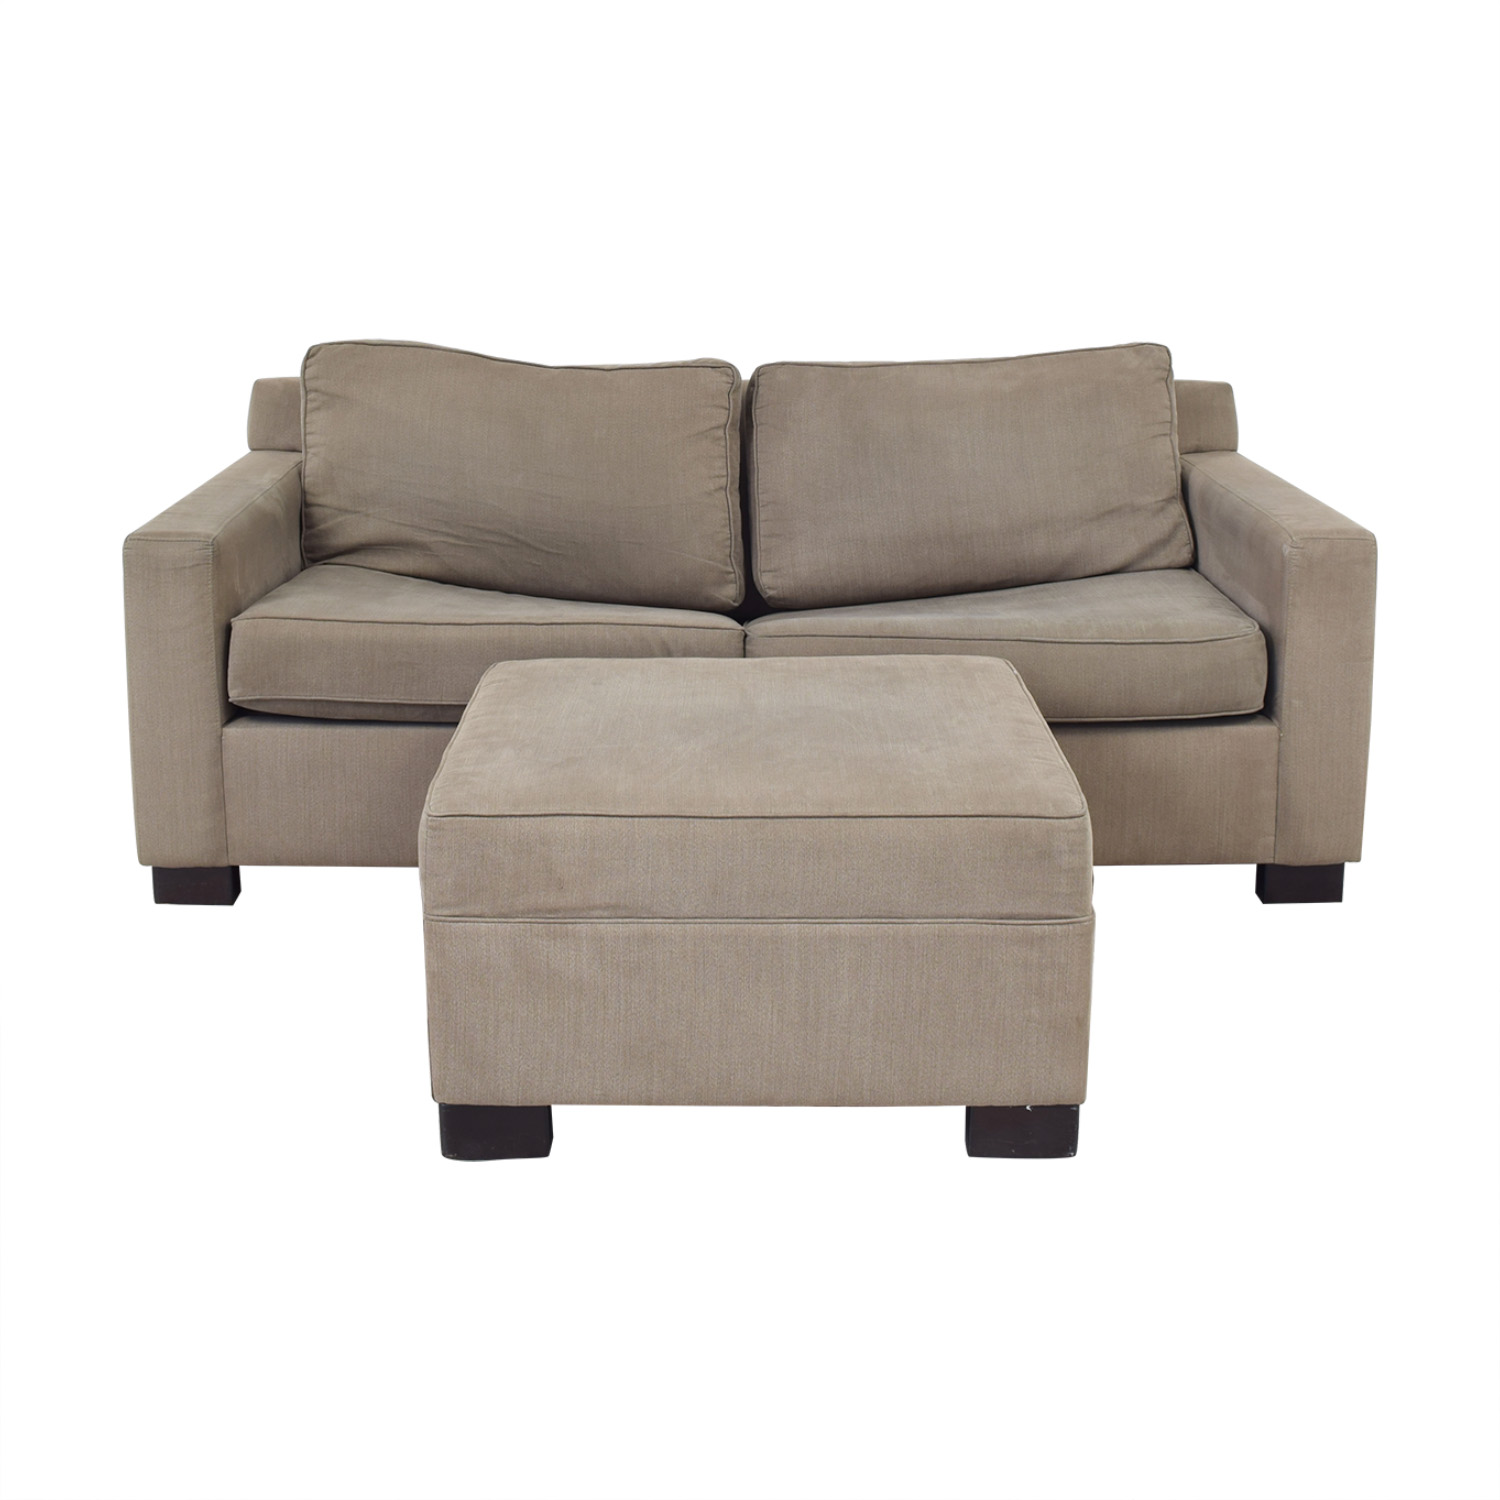 buy Urban Barn Apartment Sleeper Sofa & Ottoman Urban Barn